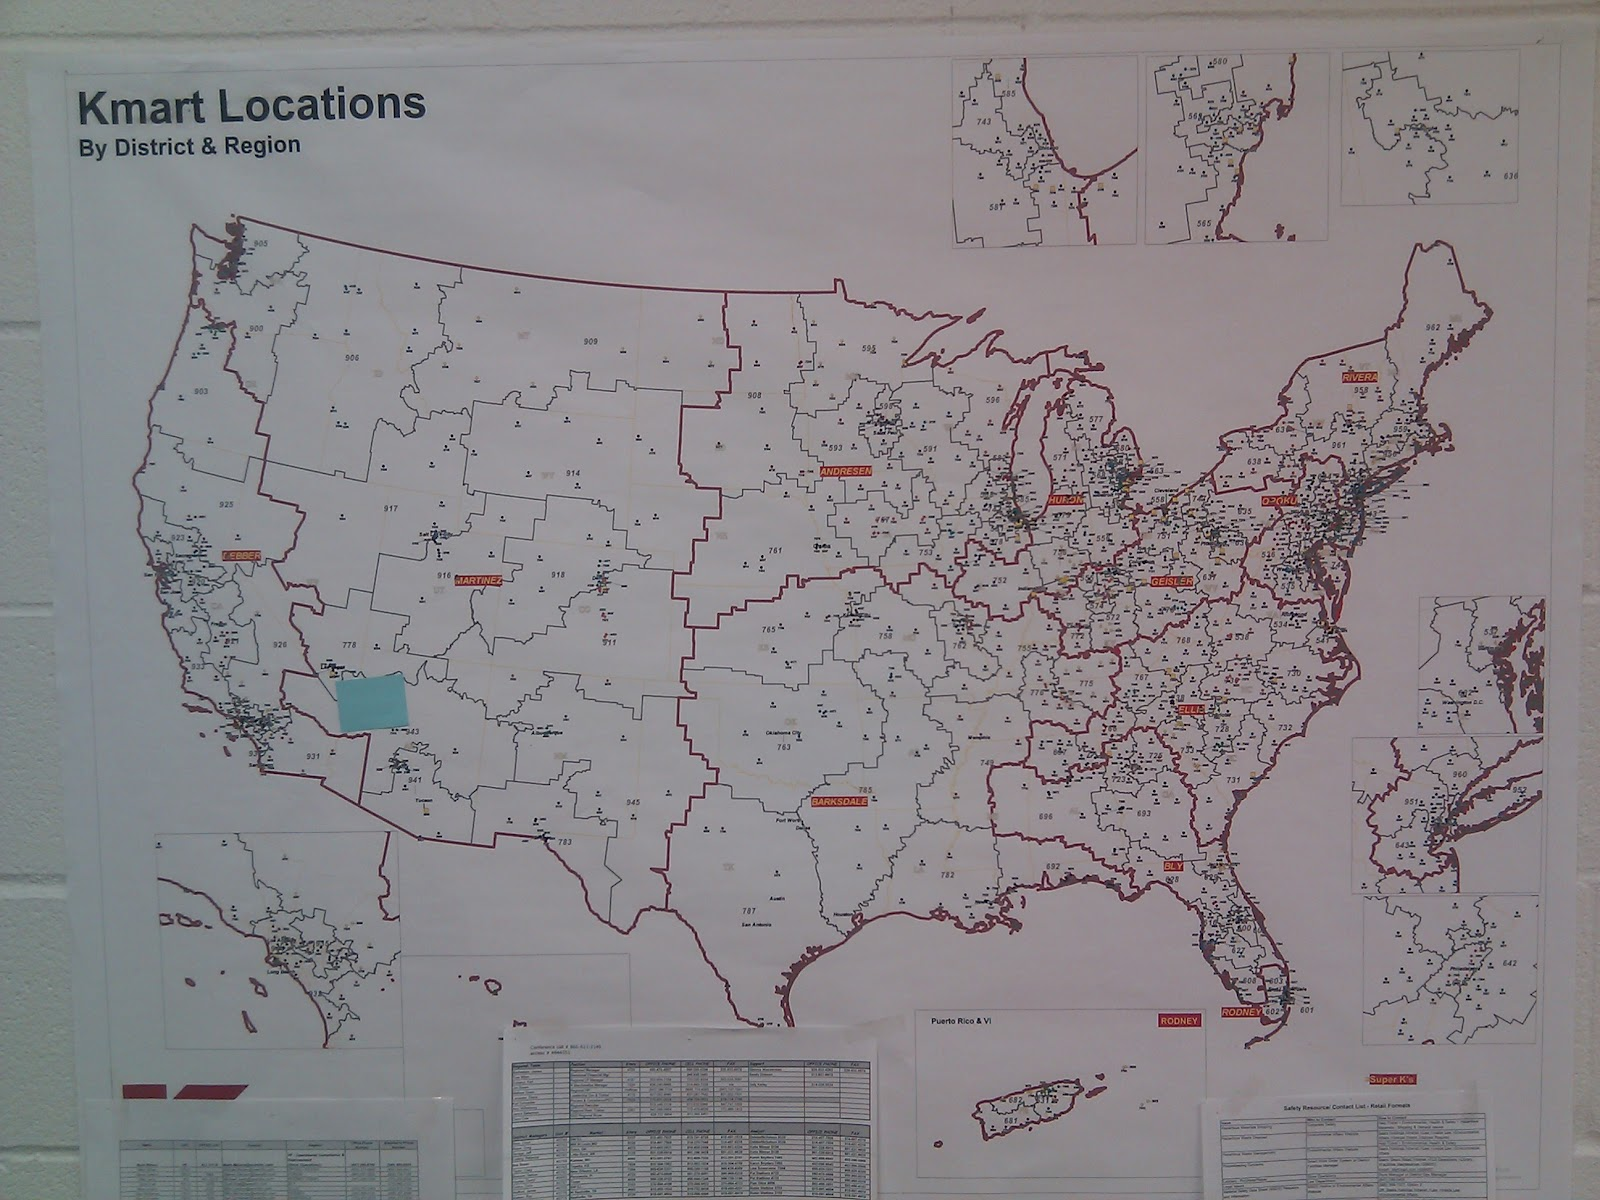 Kmart World Map Kmart World May 2012